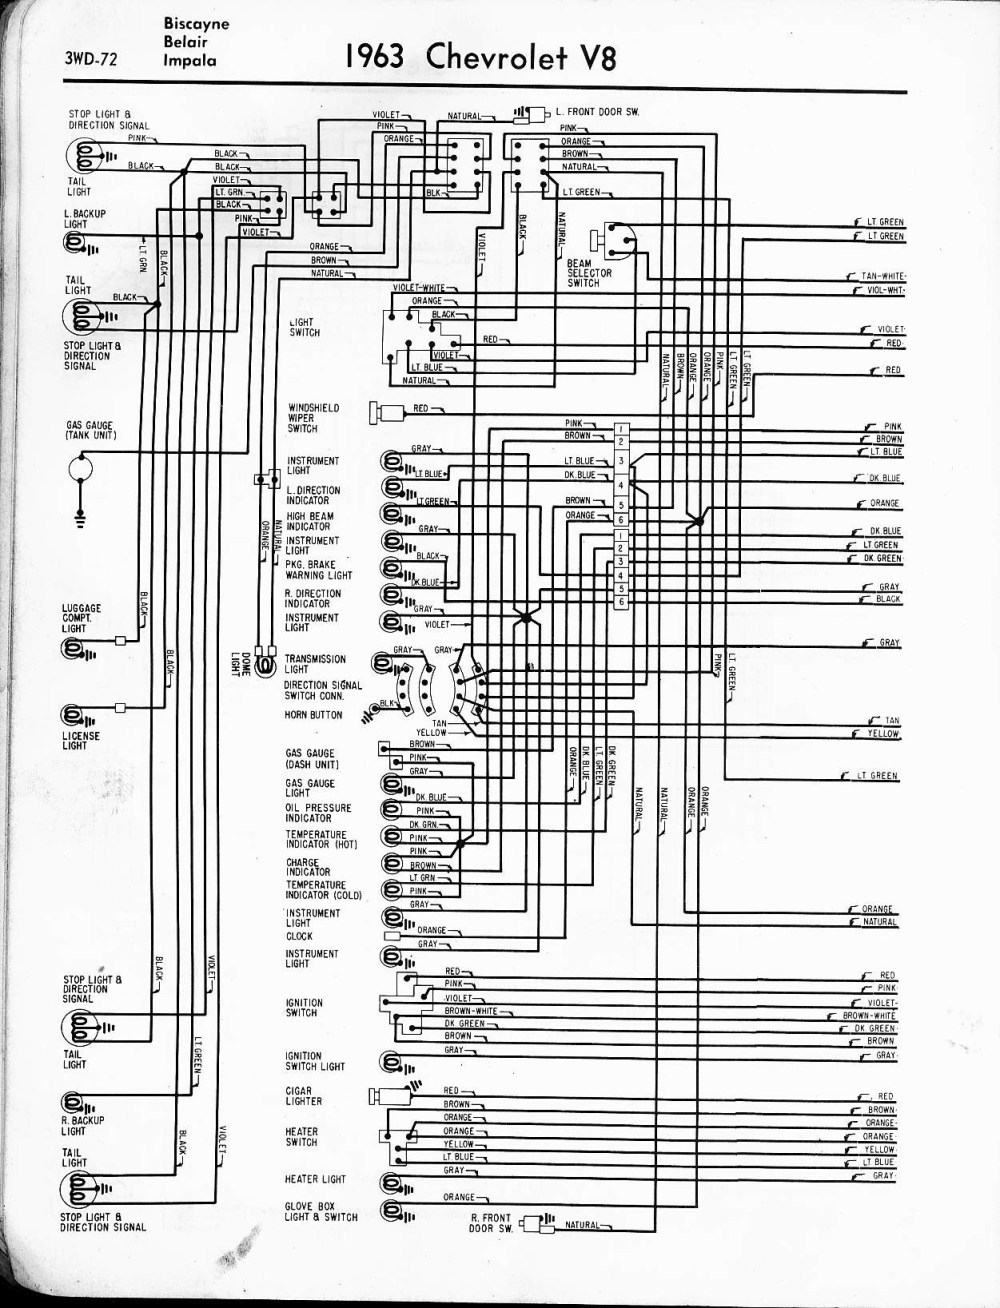 medium resolution of chevrolet bel air diagram complete 1966 chevrolet bel air wiring 1964 chevelle windshield wiper wiring diagram 1964 chevelle wiring diagram